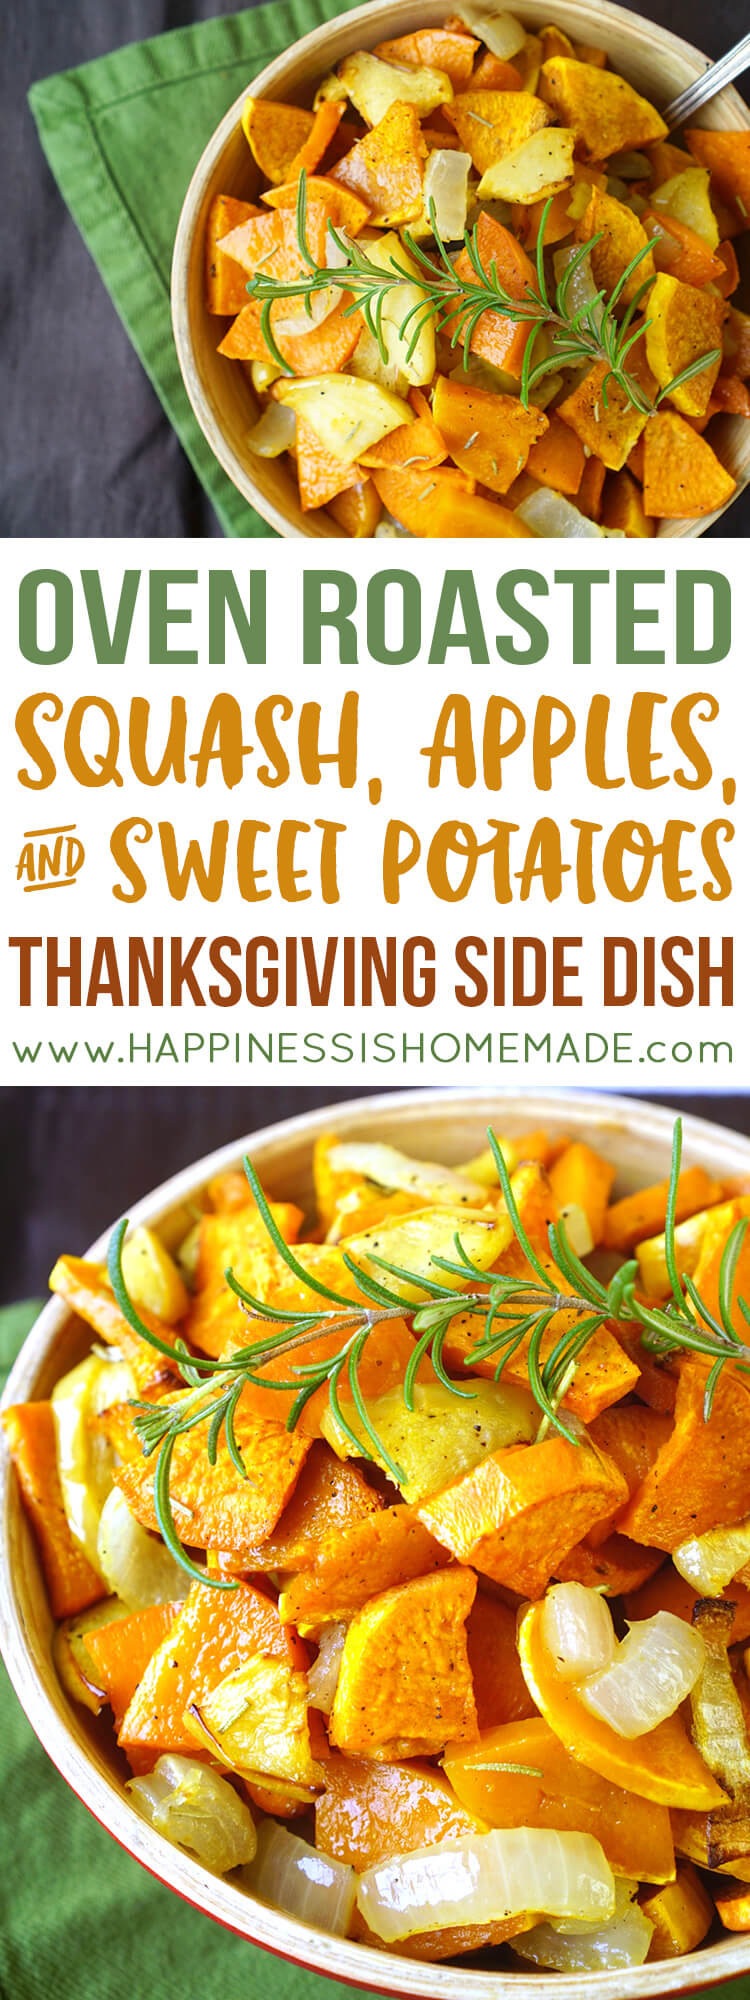 Thanksgiving Sweet Potatoes  Roasted Sweet Potatoes Squash & Apples Happiness is